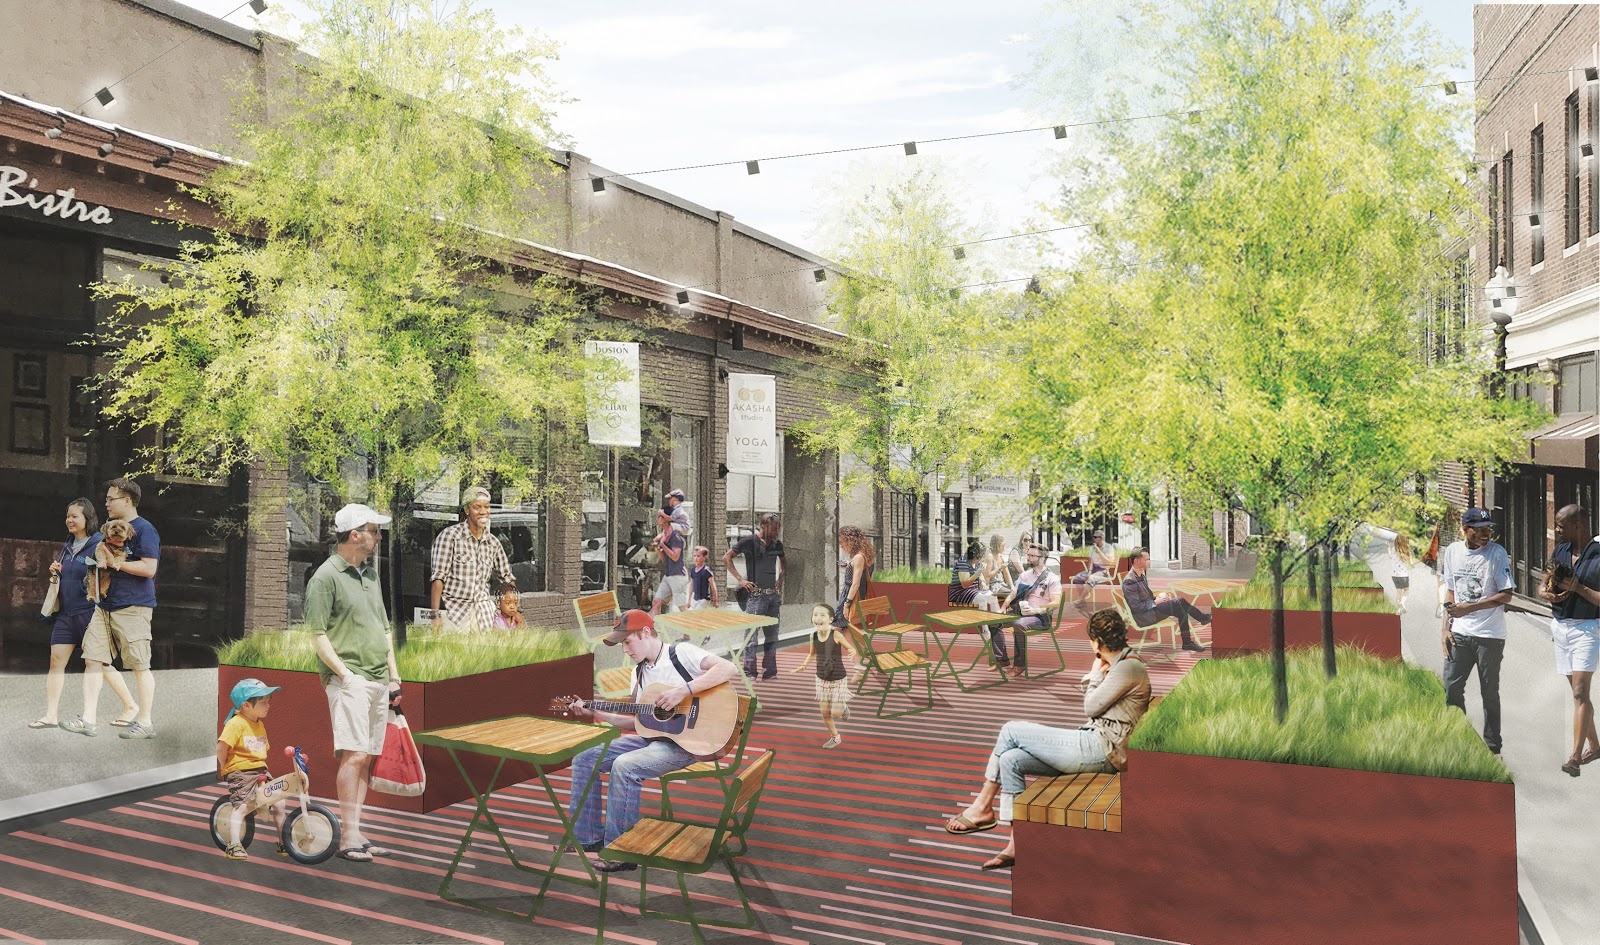 A rendering of a pedestrian plaza in Boston, with people milling about and sitting.